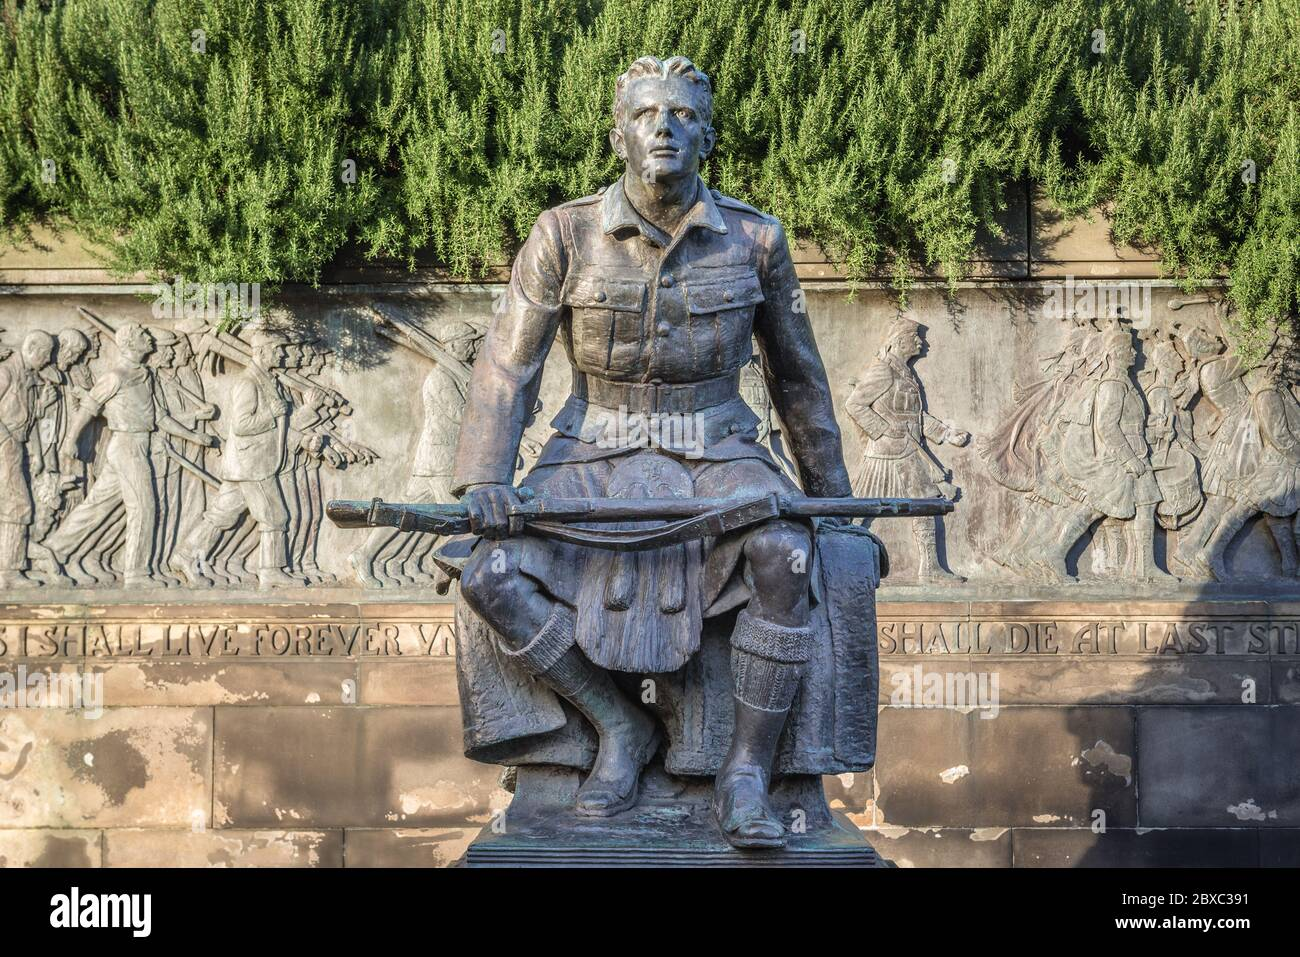 Scottish American Memorial in Princes Street Gardens public park in Edinburgh, the capital of Scotland, part of United Kingdom Stock Photo